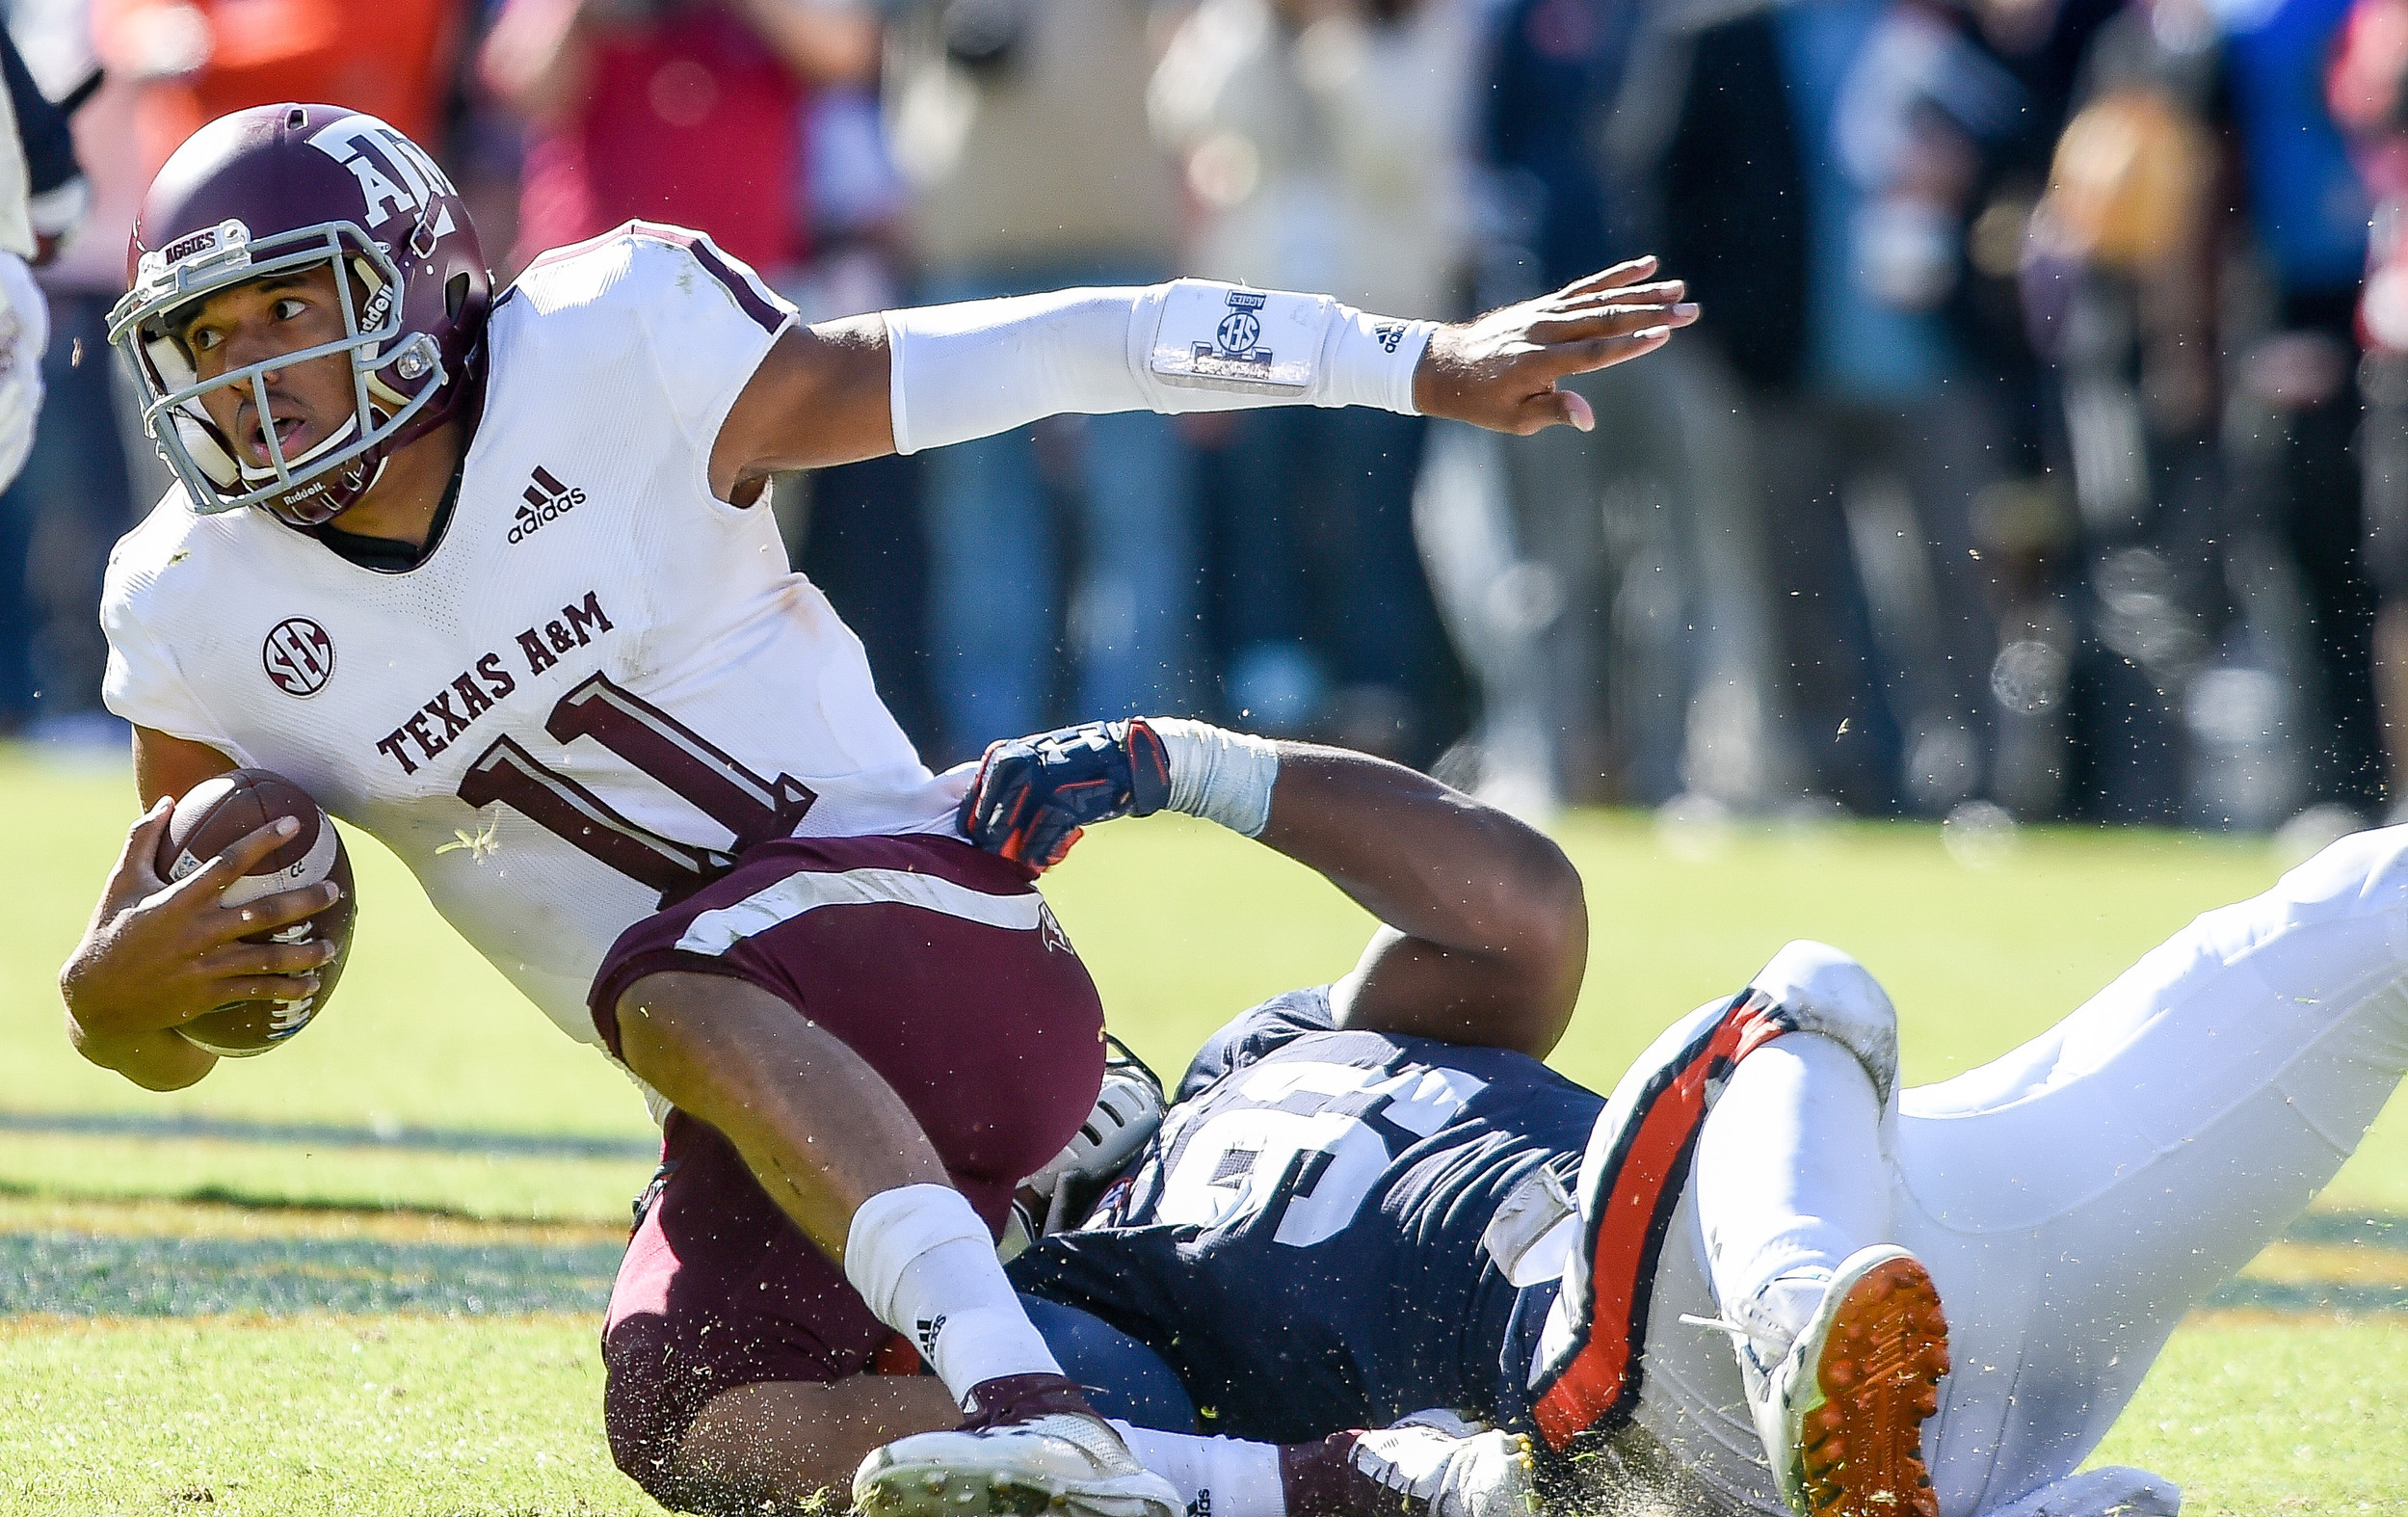 Texas A&M Aggies quarterback Kellen Mond (11) is pulled down by Auburn Tigers defensive lineman Nick Coe (91) during the second half of an NCAA football game Saturday, November 3, 2018, at Jordan-Hare Stadium in Auburn, Ala. (Photo by Jeff Johnsey)